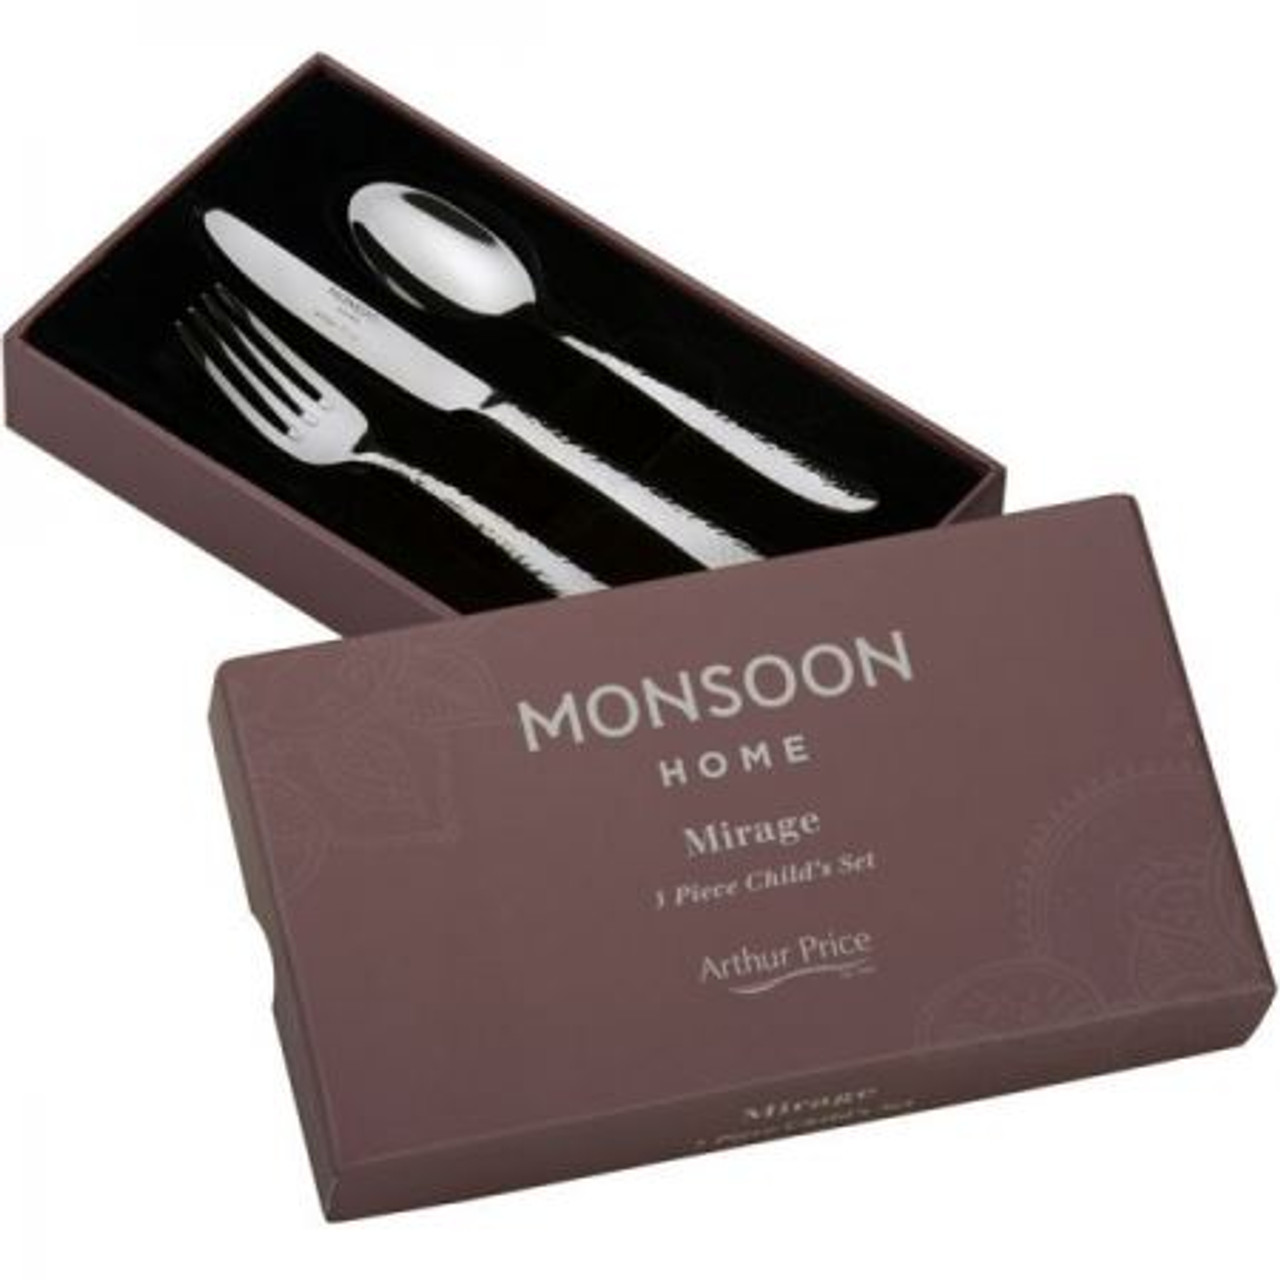 Arthur Price Monsoon Mirage Childs Cutlery Set